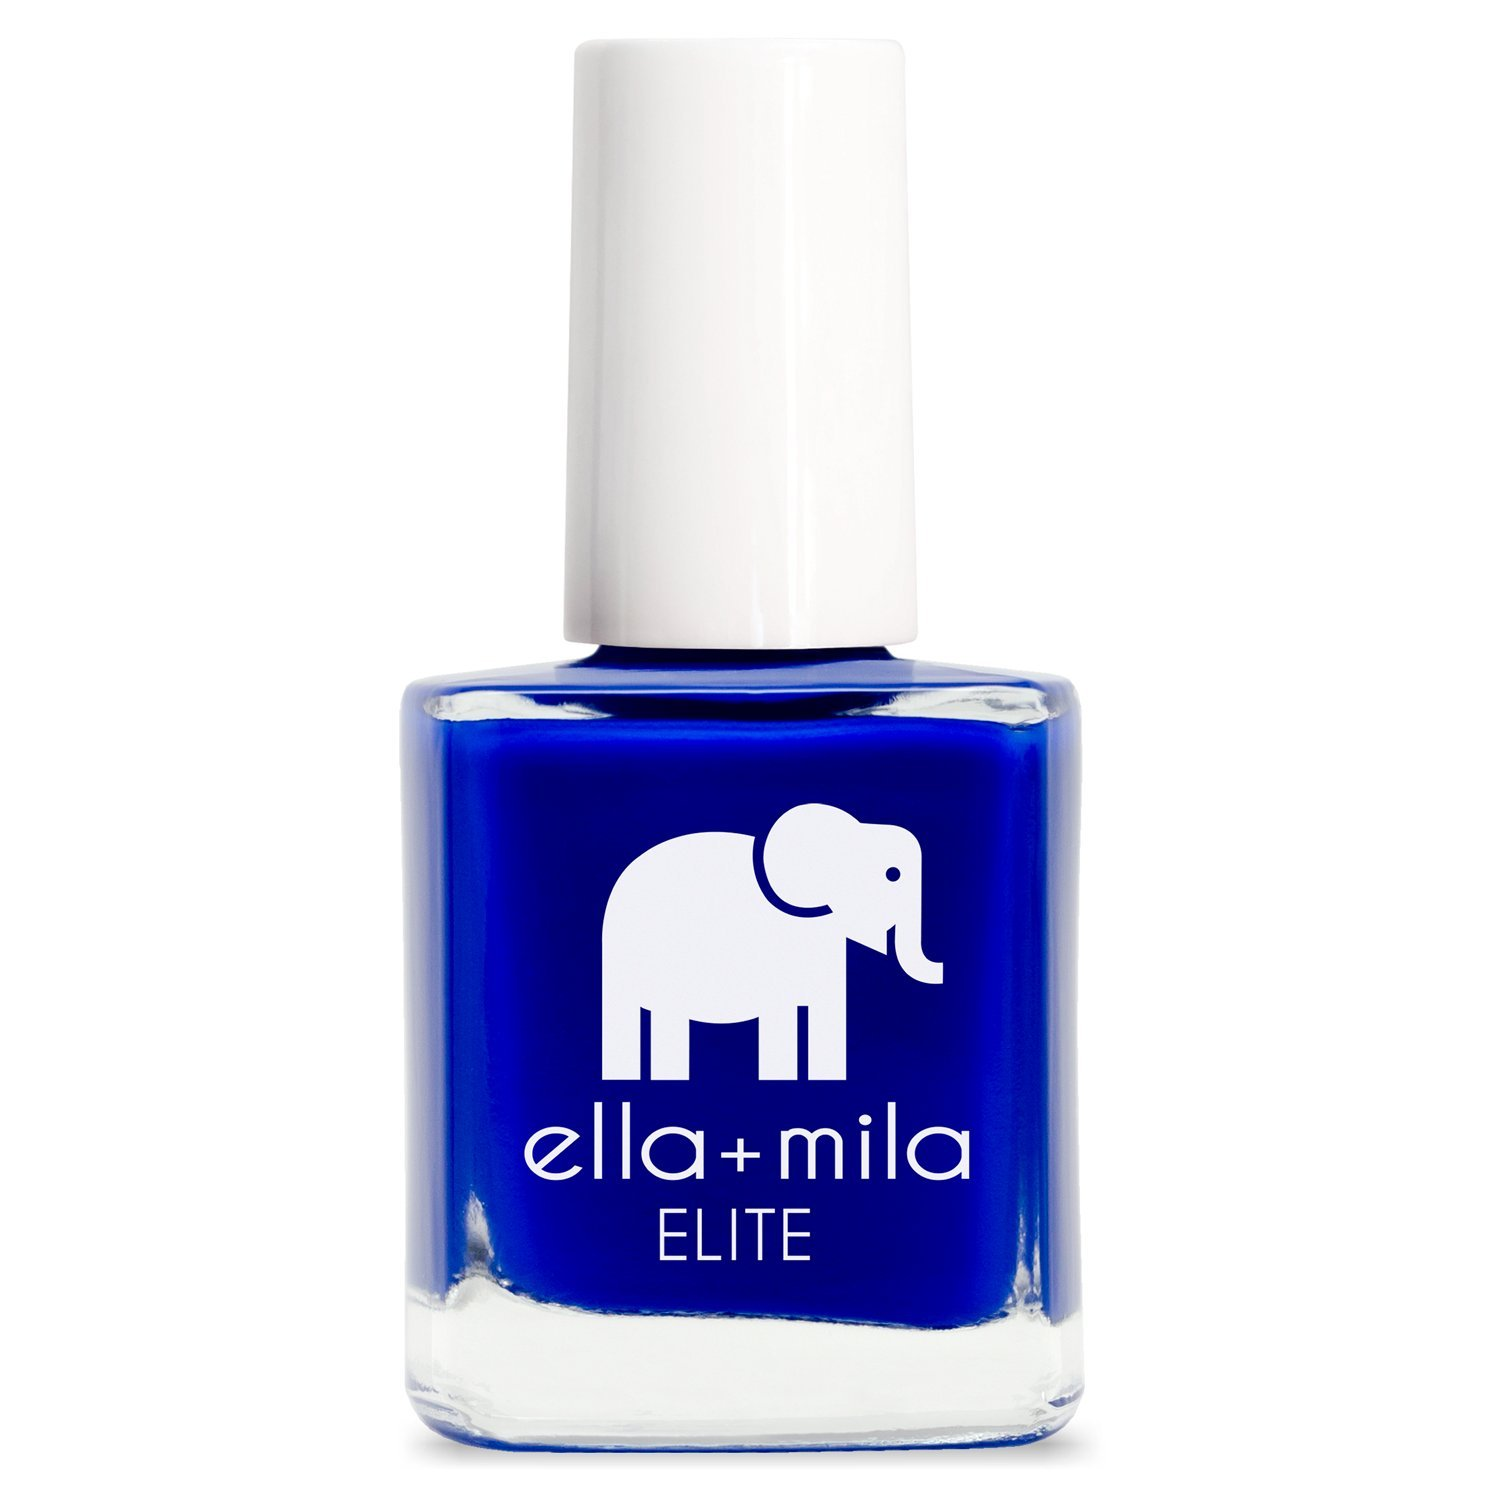 ella+mila Nail Polish, ELITE Collection - Bags are Packed